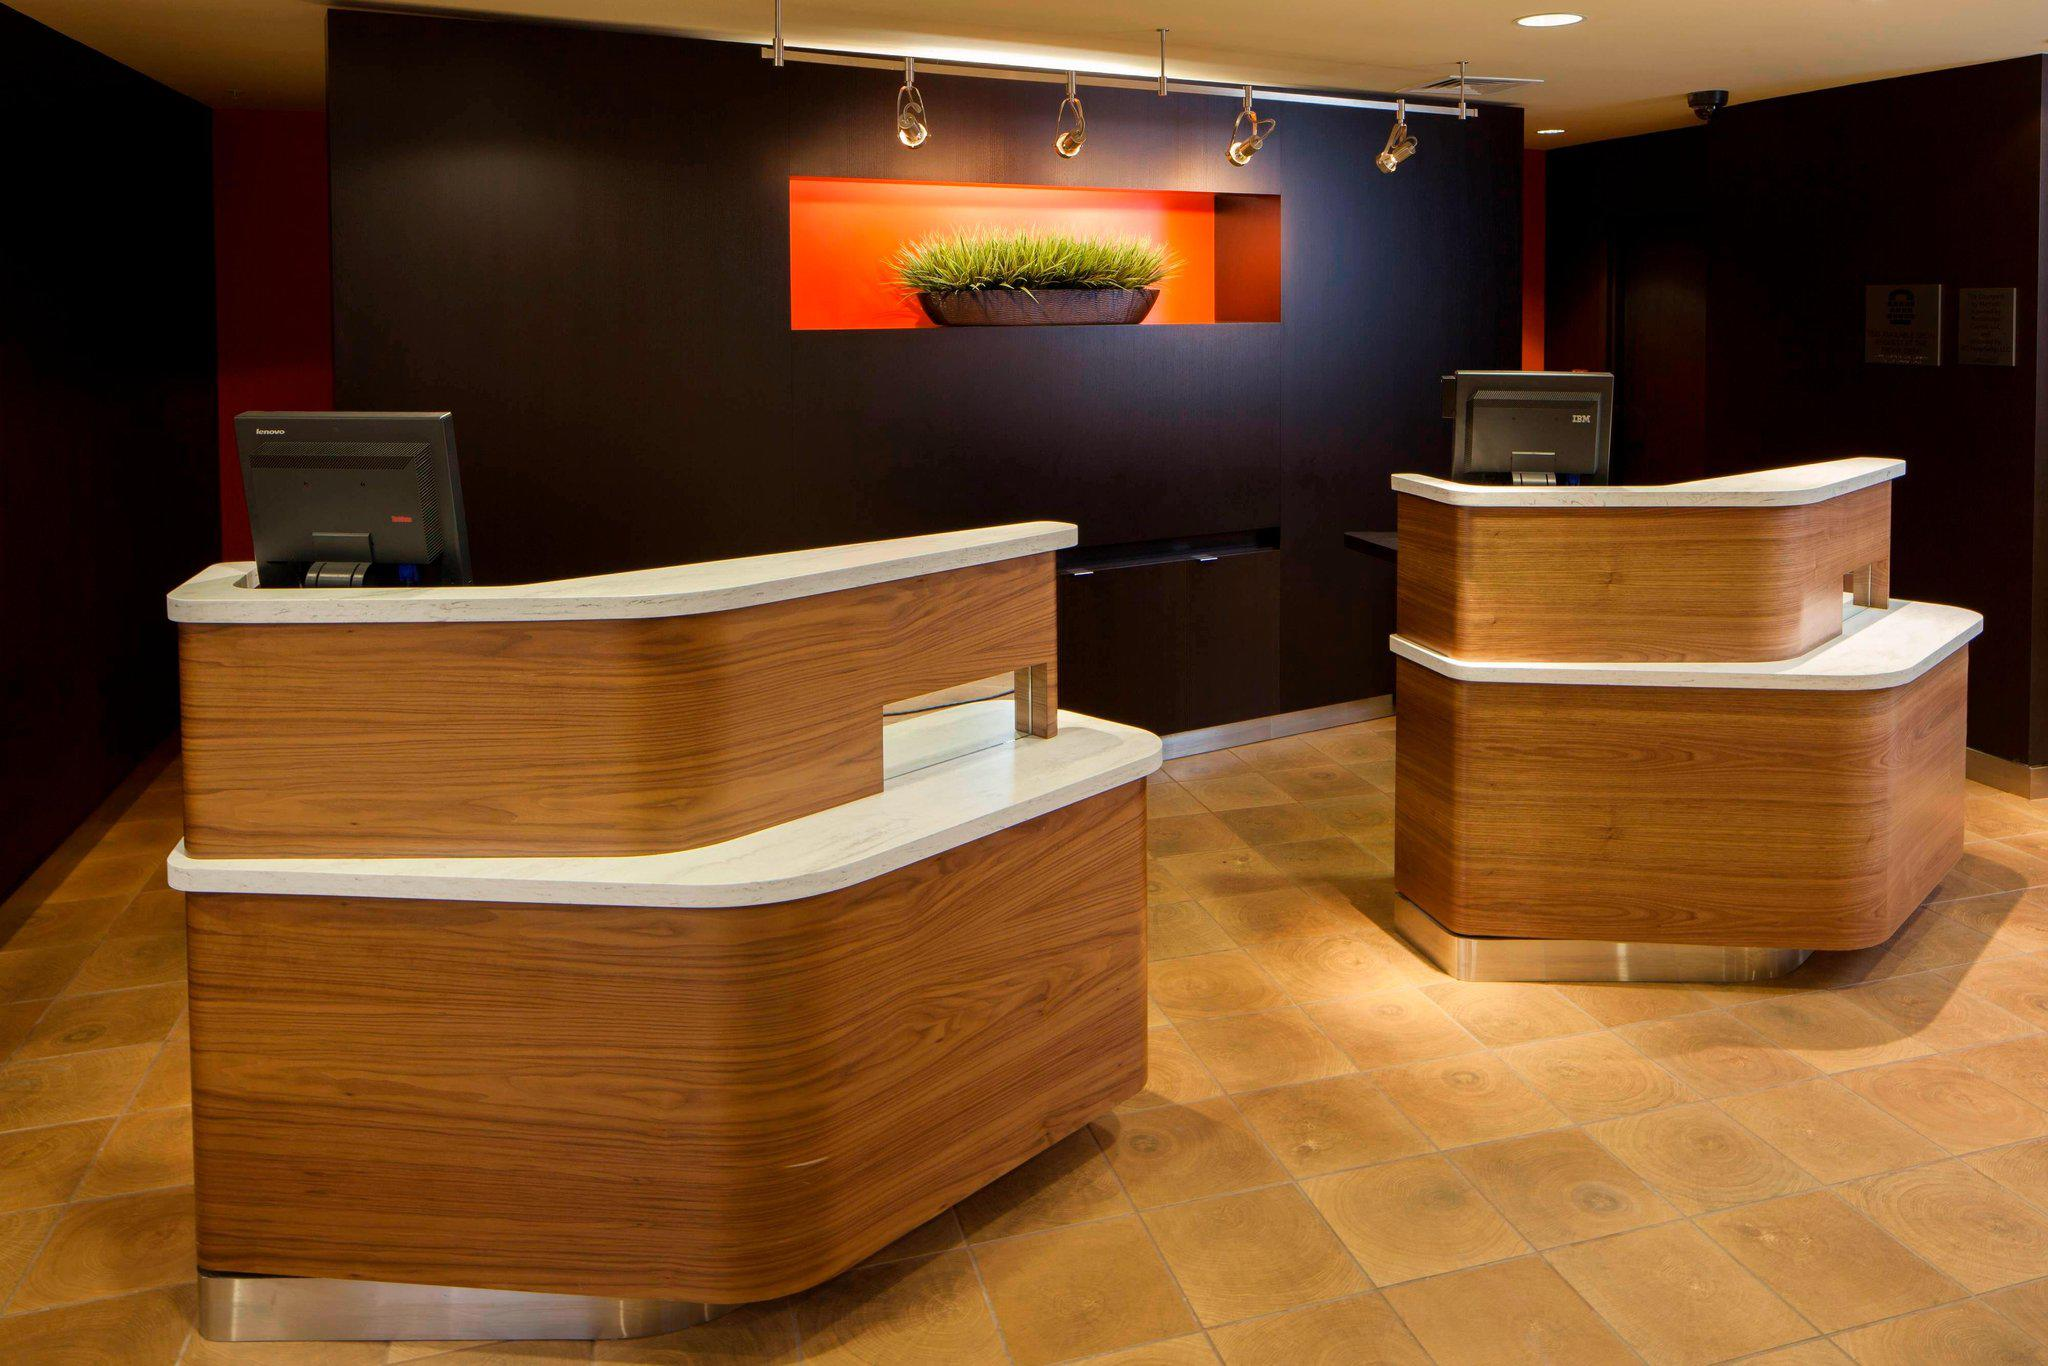 Courtyard by Marriott Wichita at Old Town